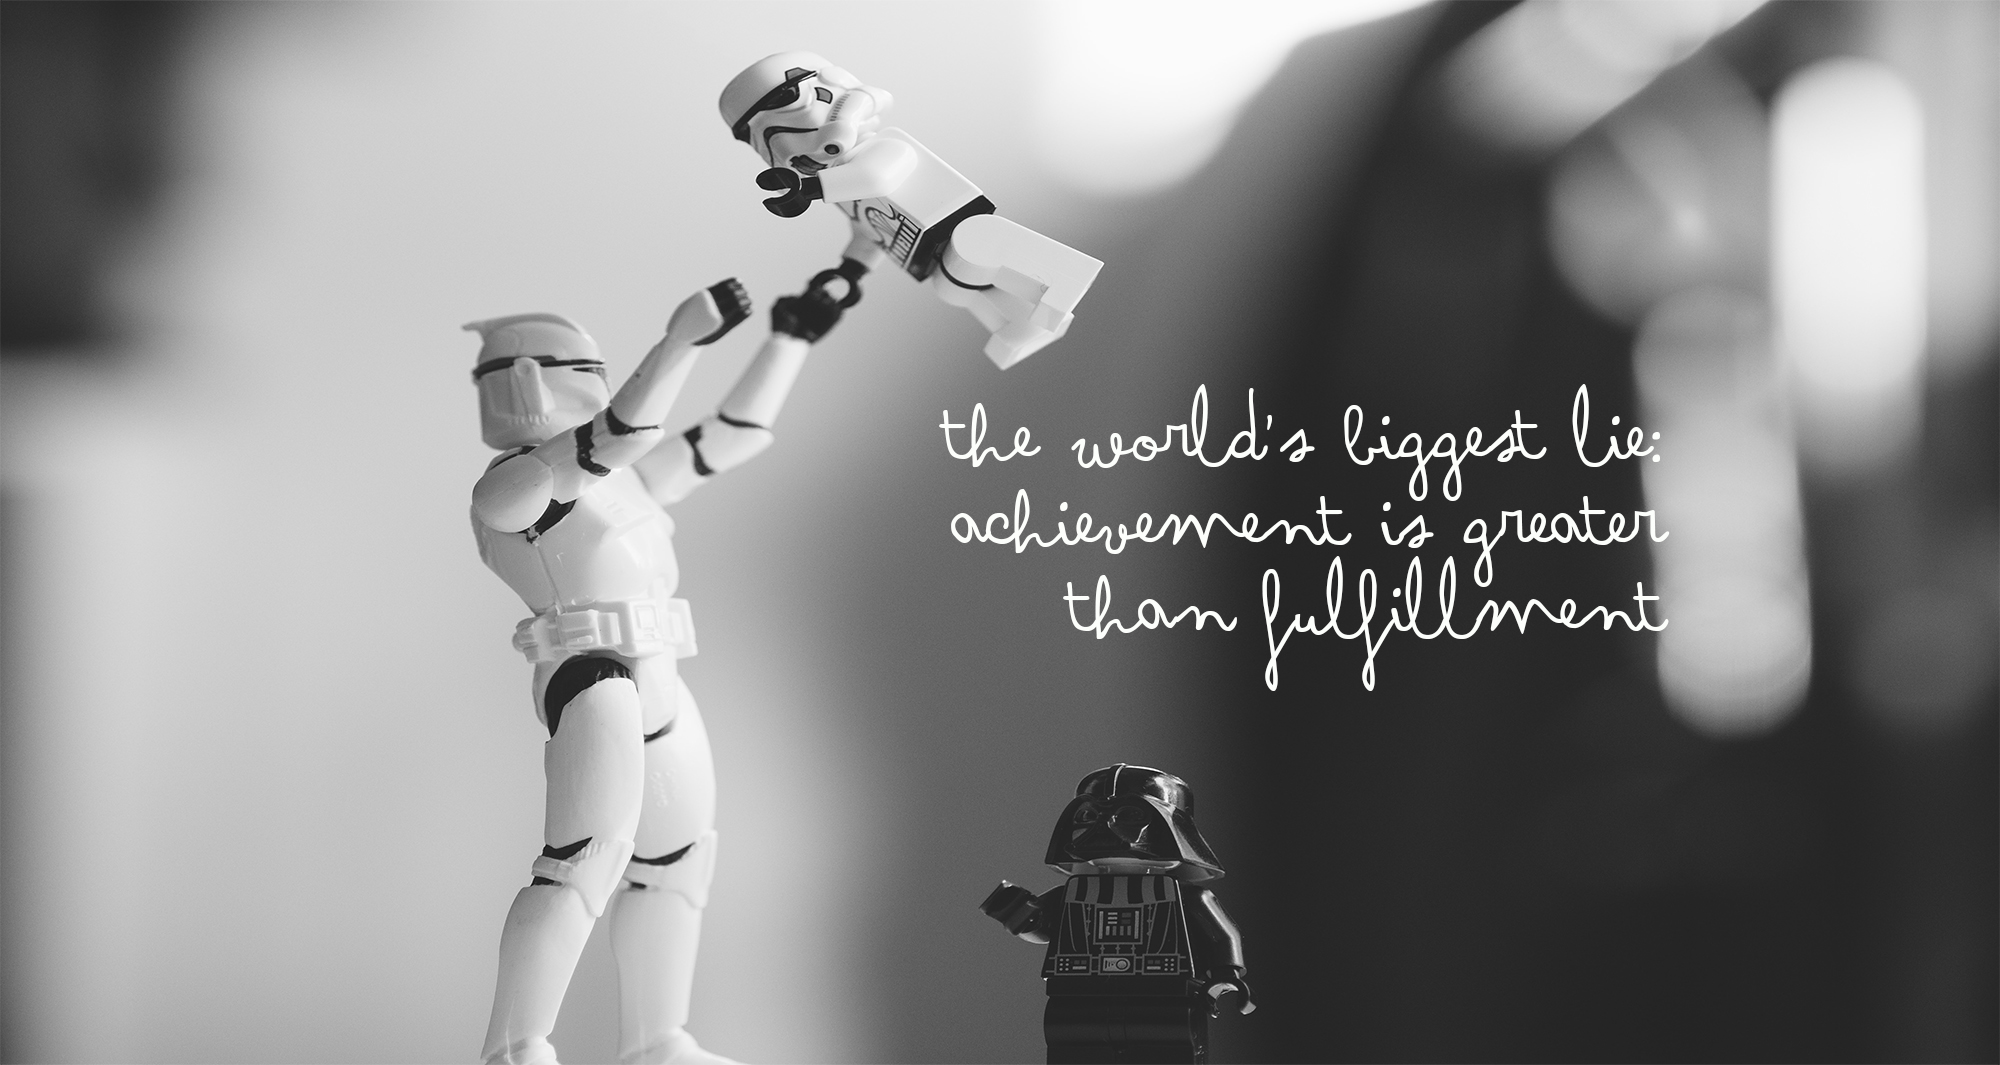 the worlds great lie-achievement is greater than fulfillment